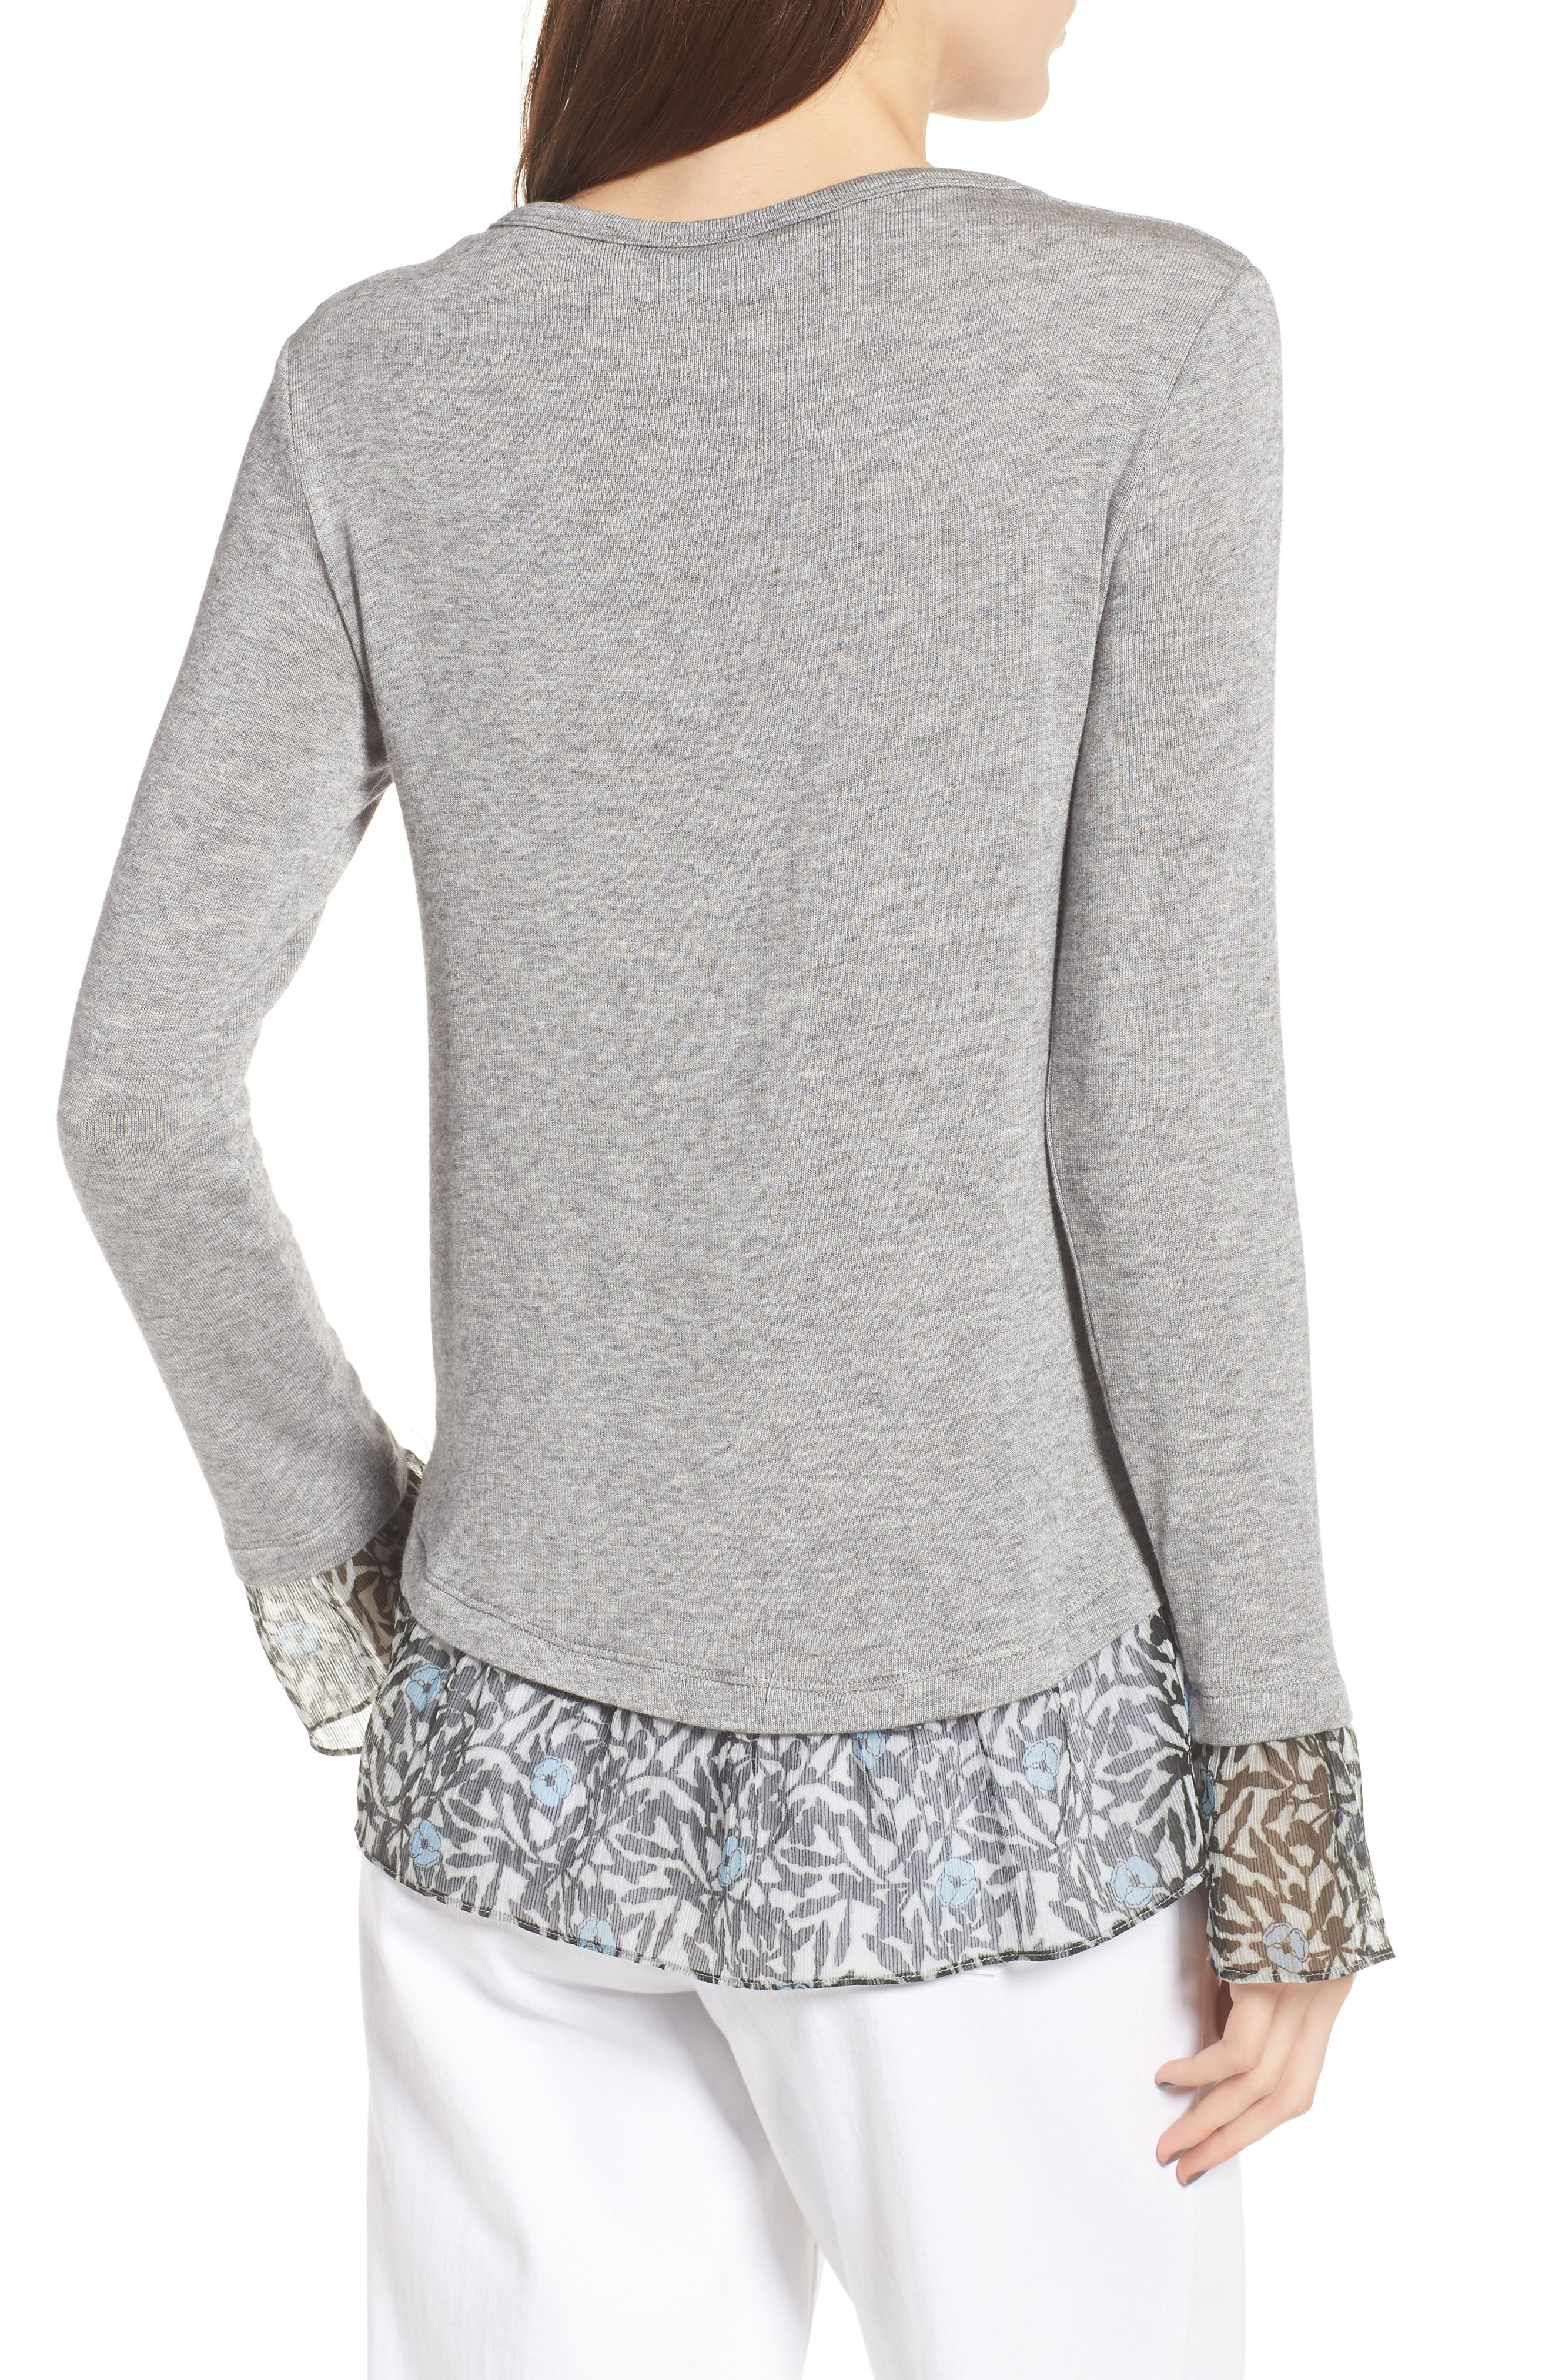 Taiko Lace Trim Top,                             Alternate thumbnail 2, color,                             Heather Grey